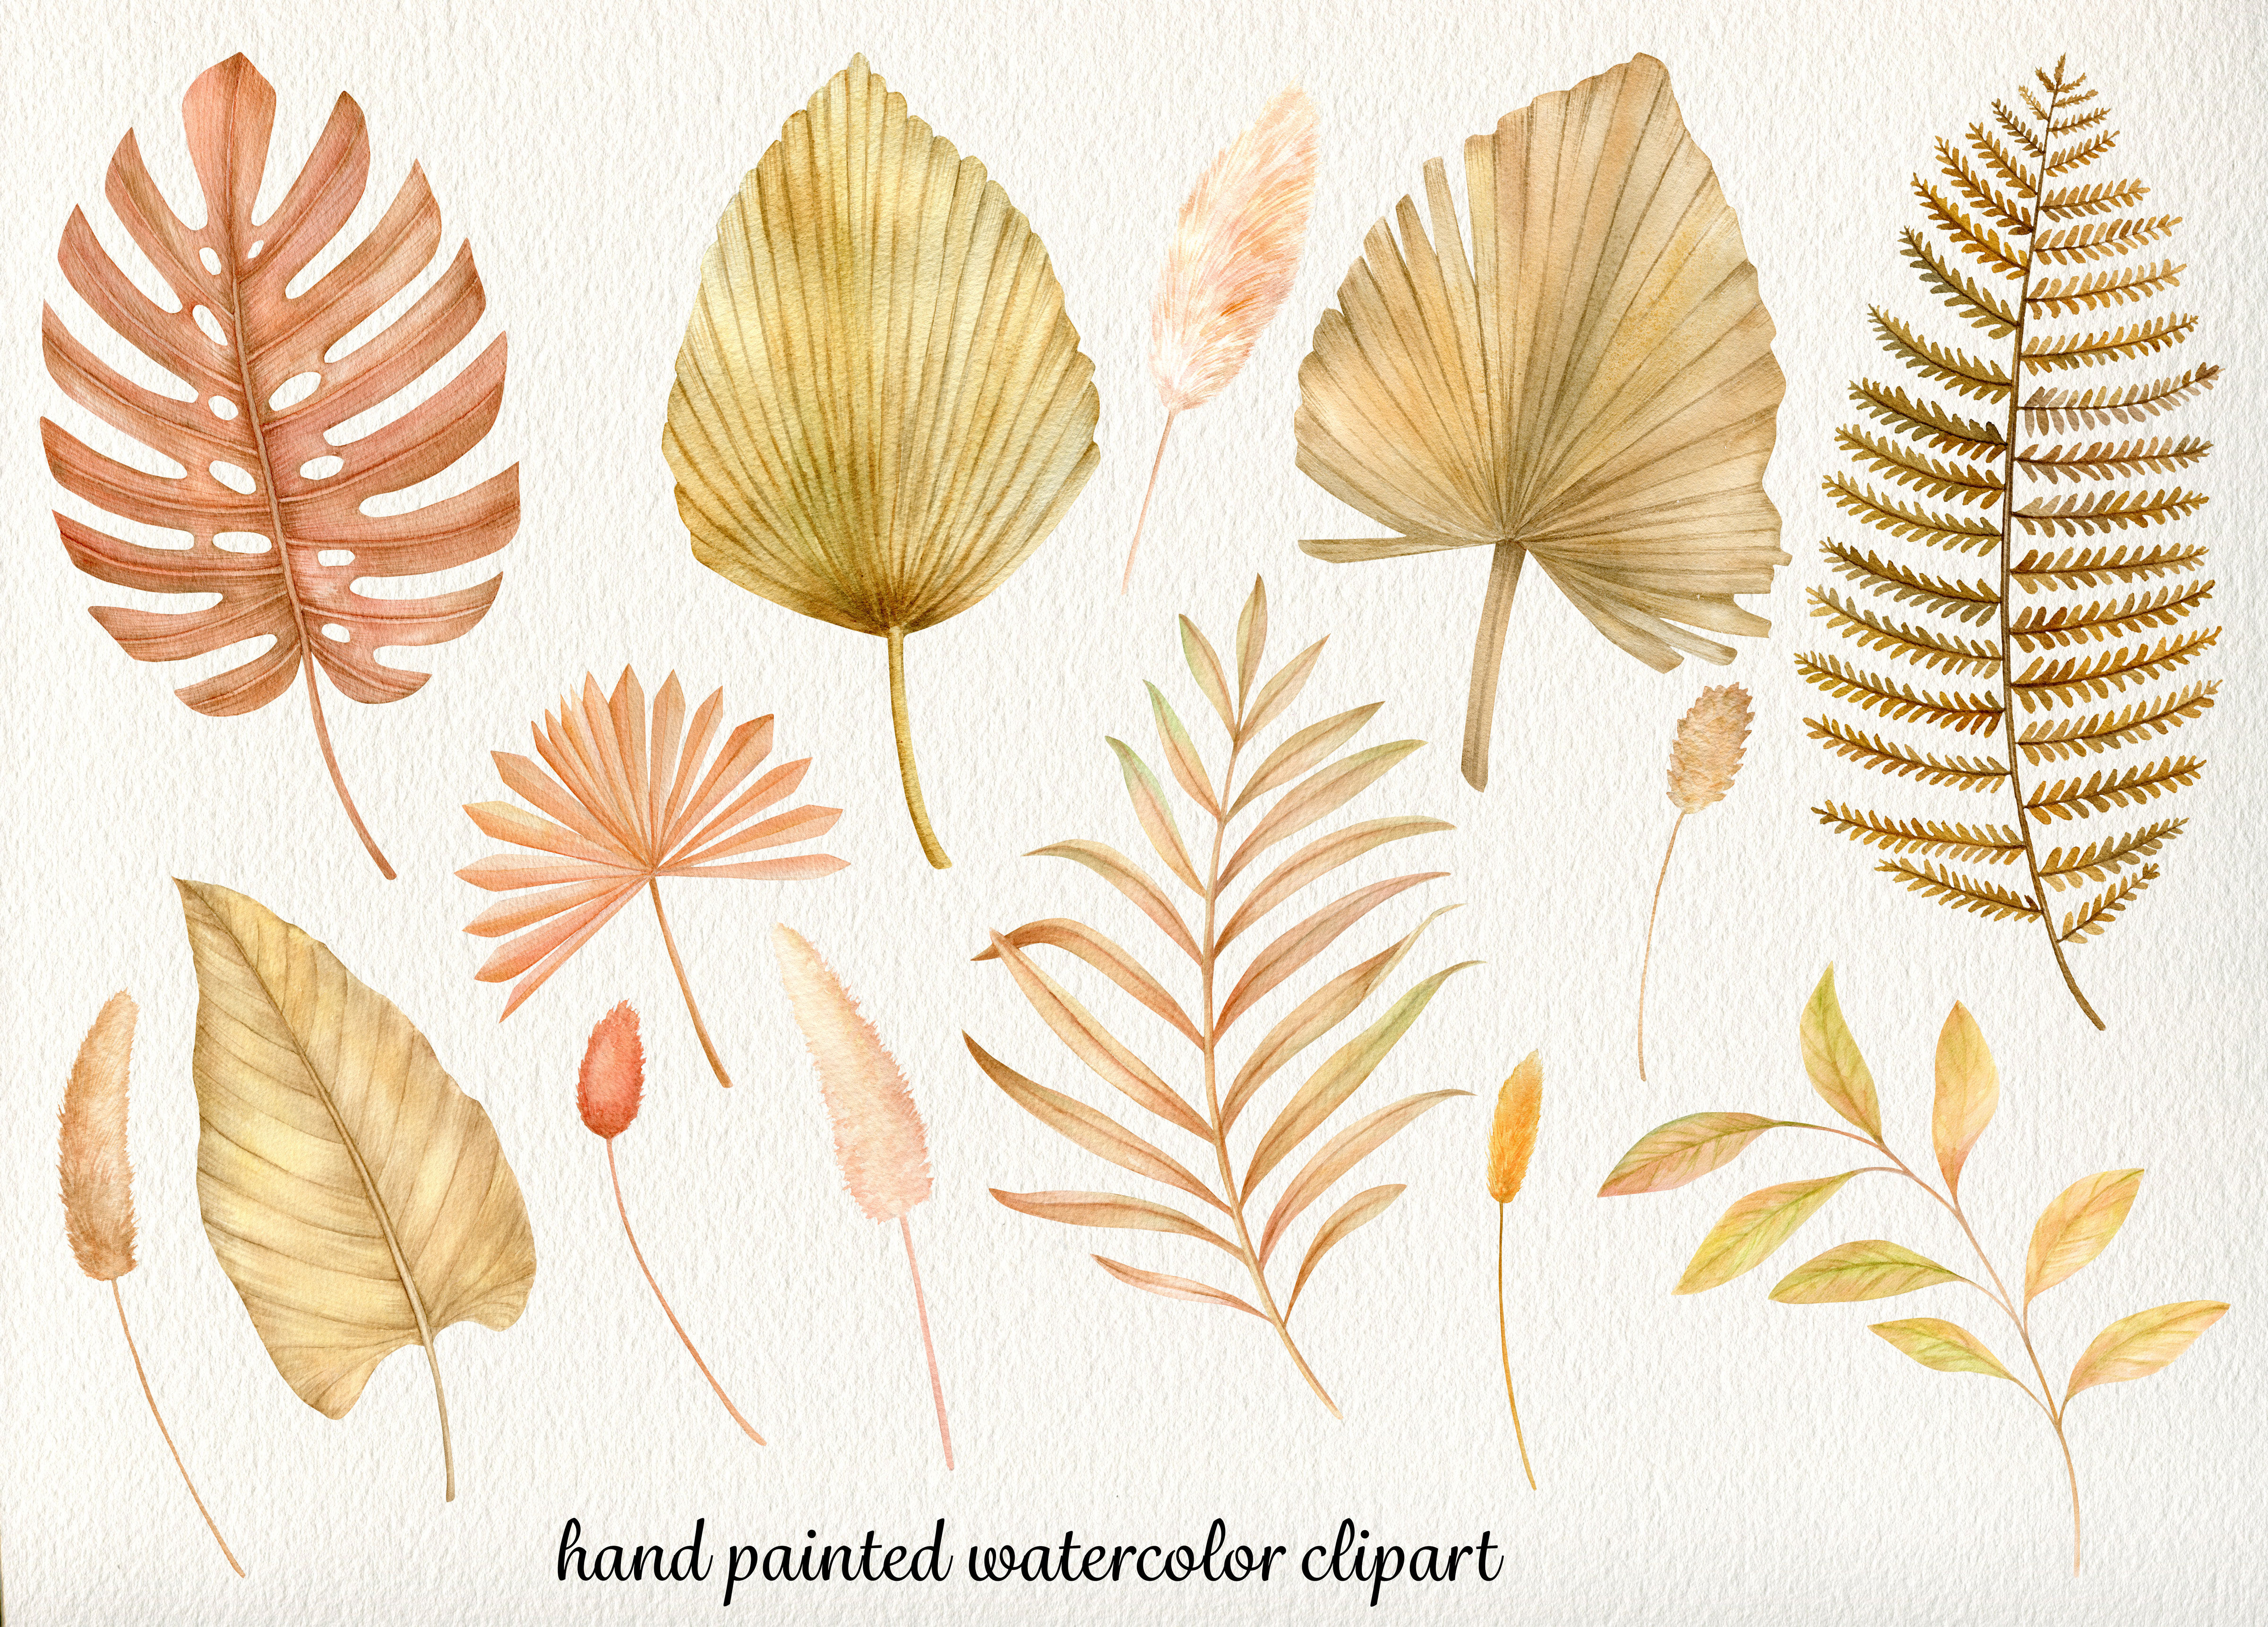 Watercolor Dried Palm Leaves Clipart Summer Tropical Flowers Clip Art By Svetlana Sintcova Thehungryjpeg Com Affordable and search from millions of royalty free images, photos and vectors. the hungry jpeg